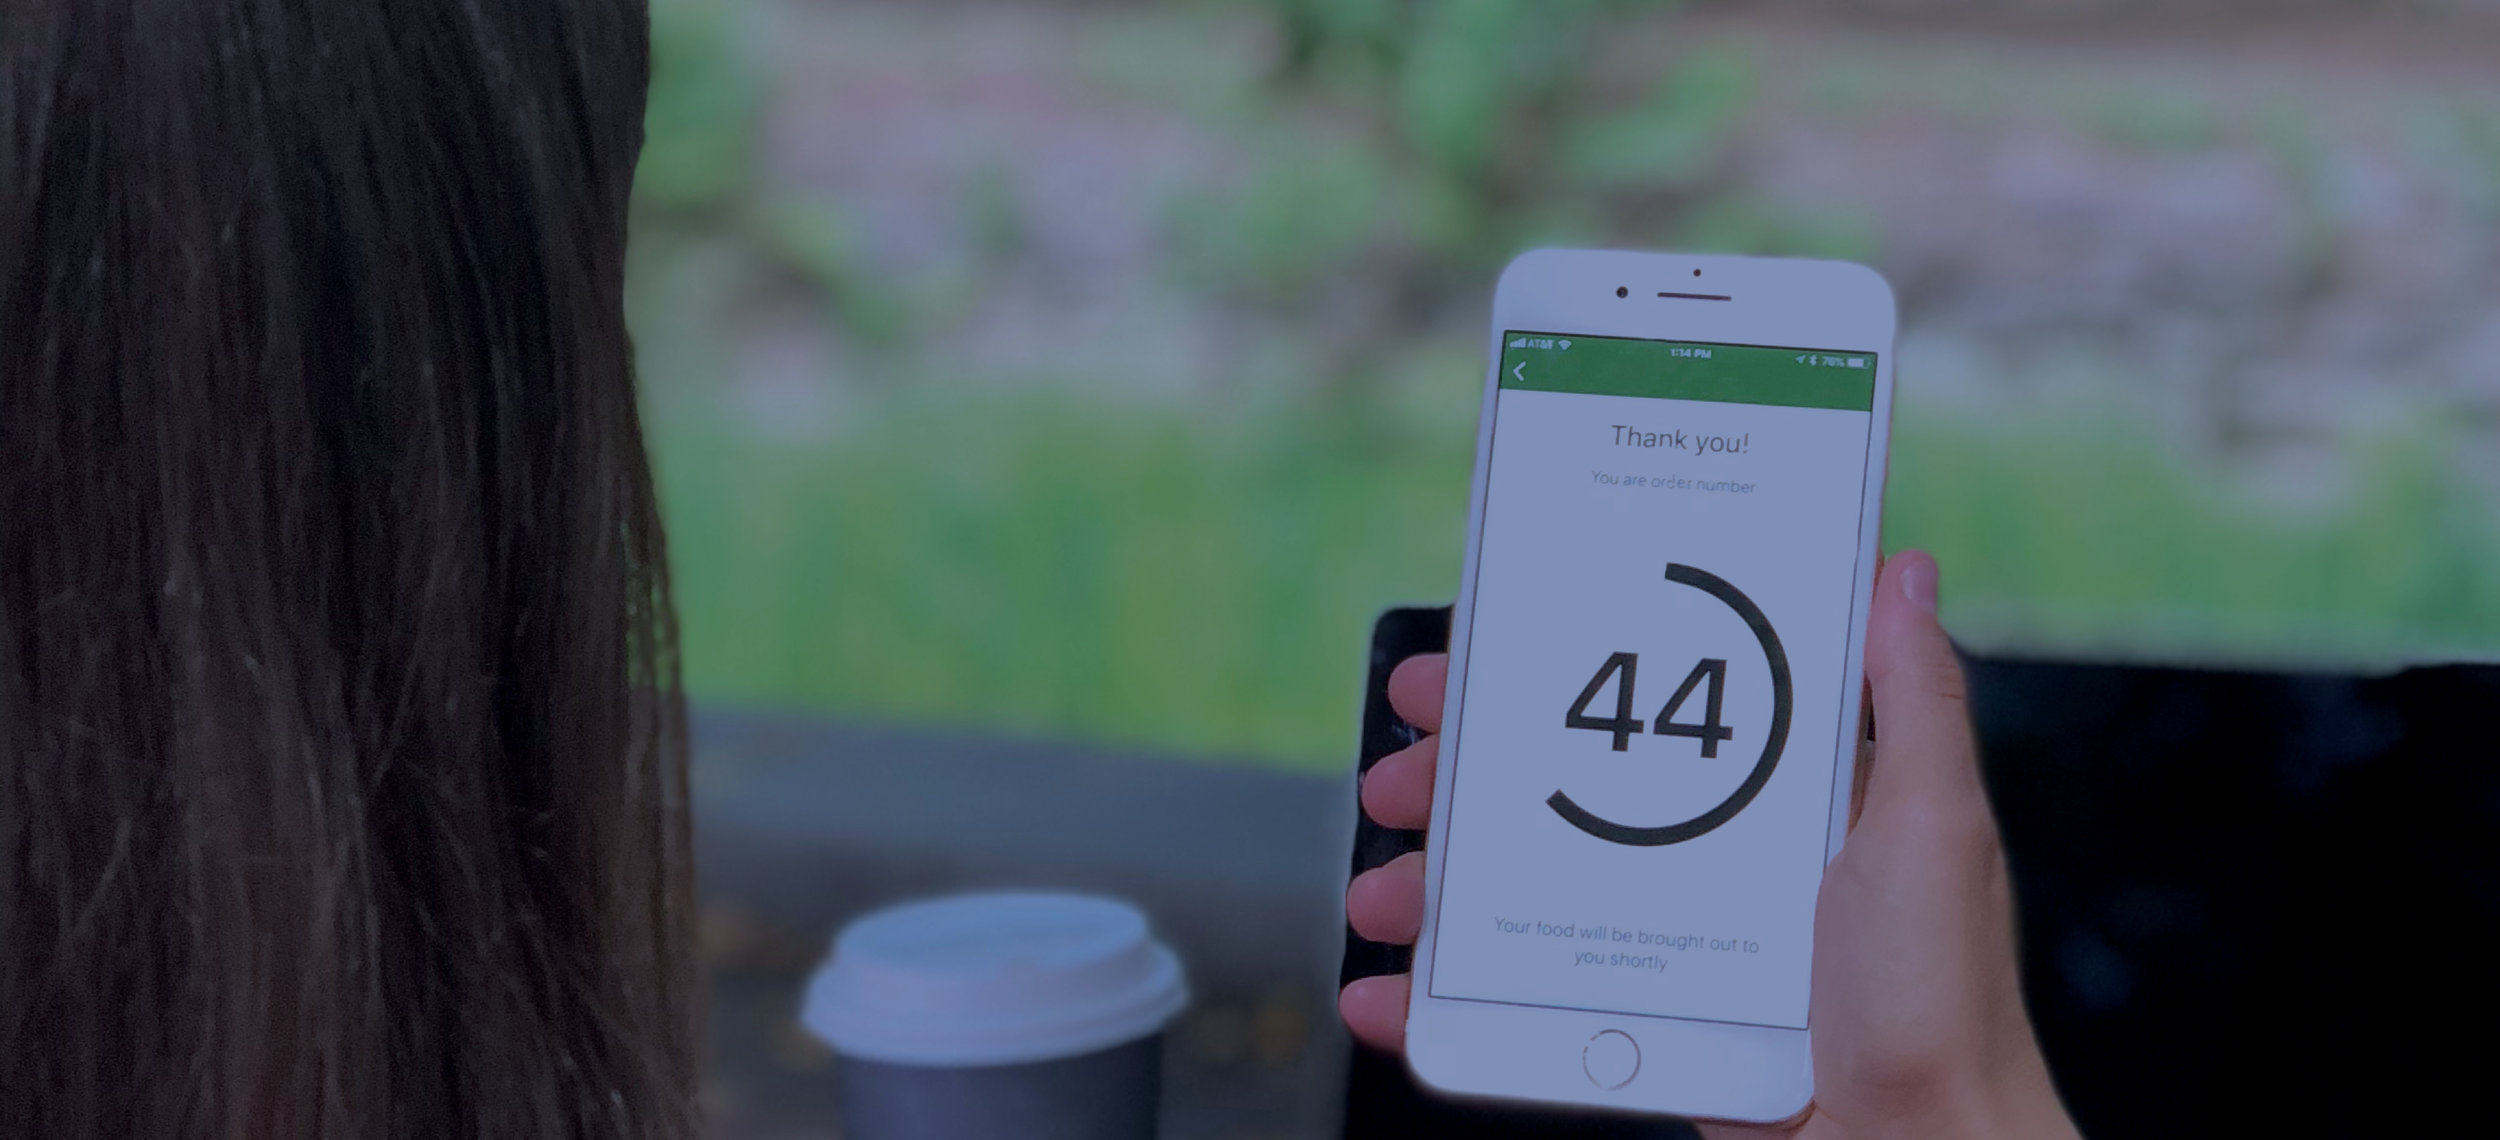 Radius Networks enables customers to add themselves to a nearby restaurant waitlist with a simple click of a button.